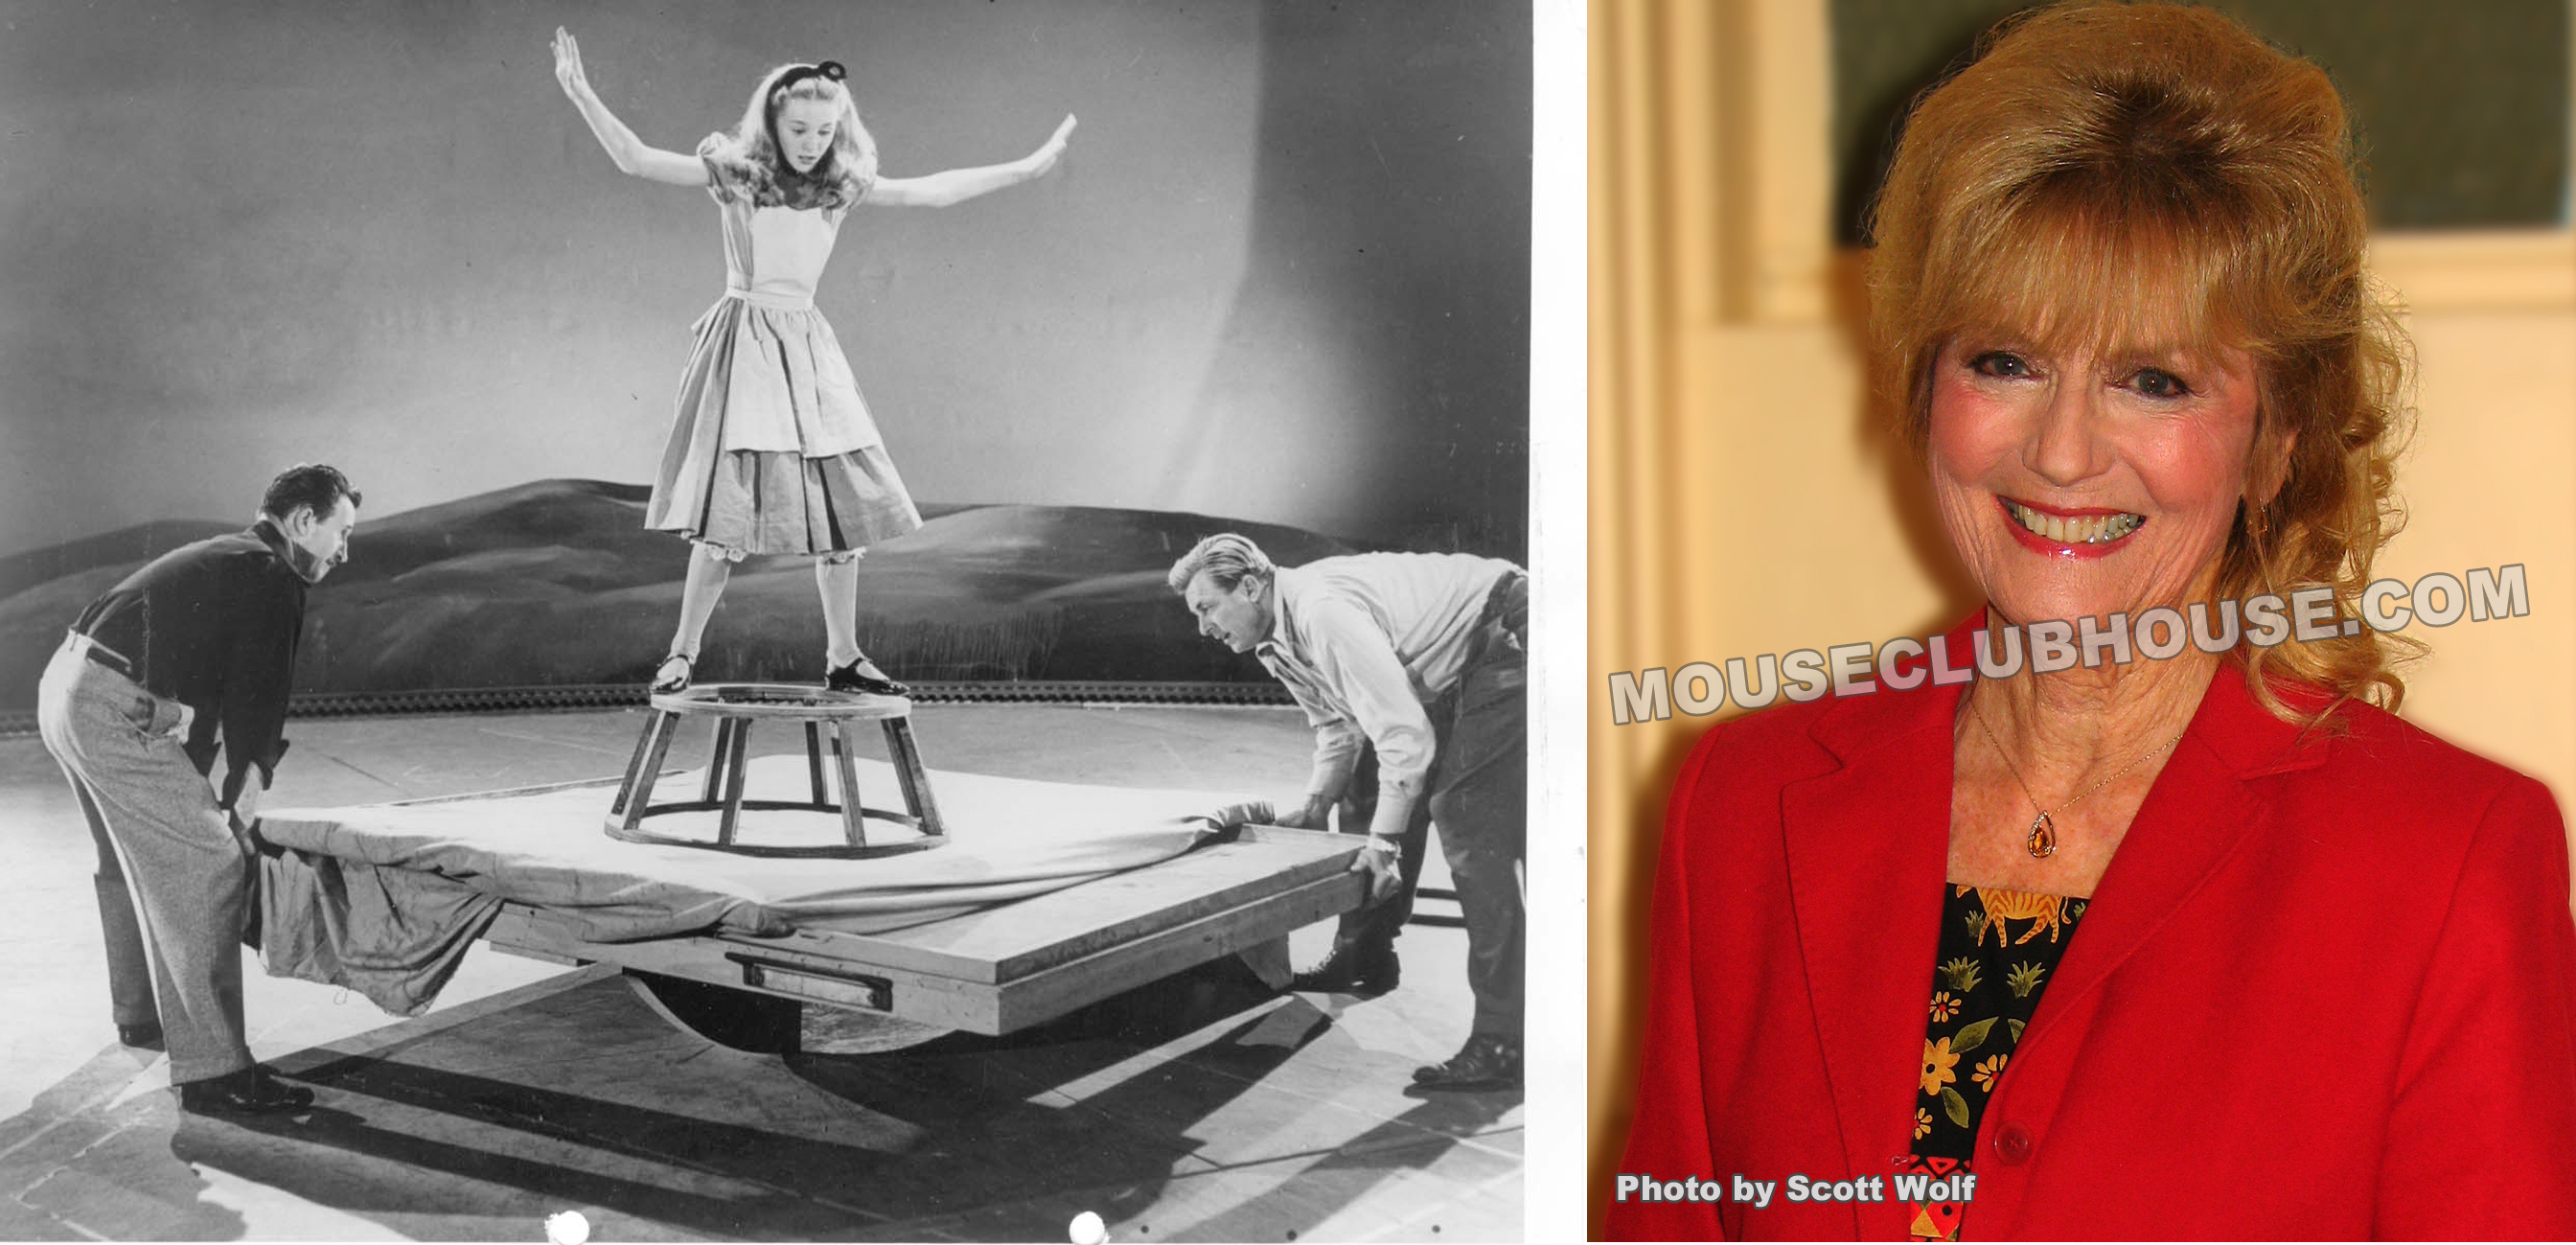 kathryn beaumont wiki